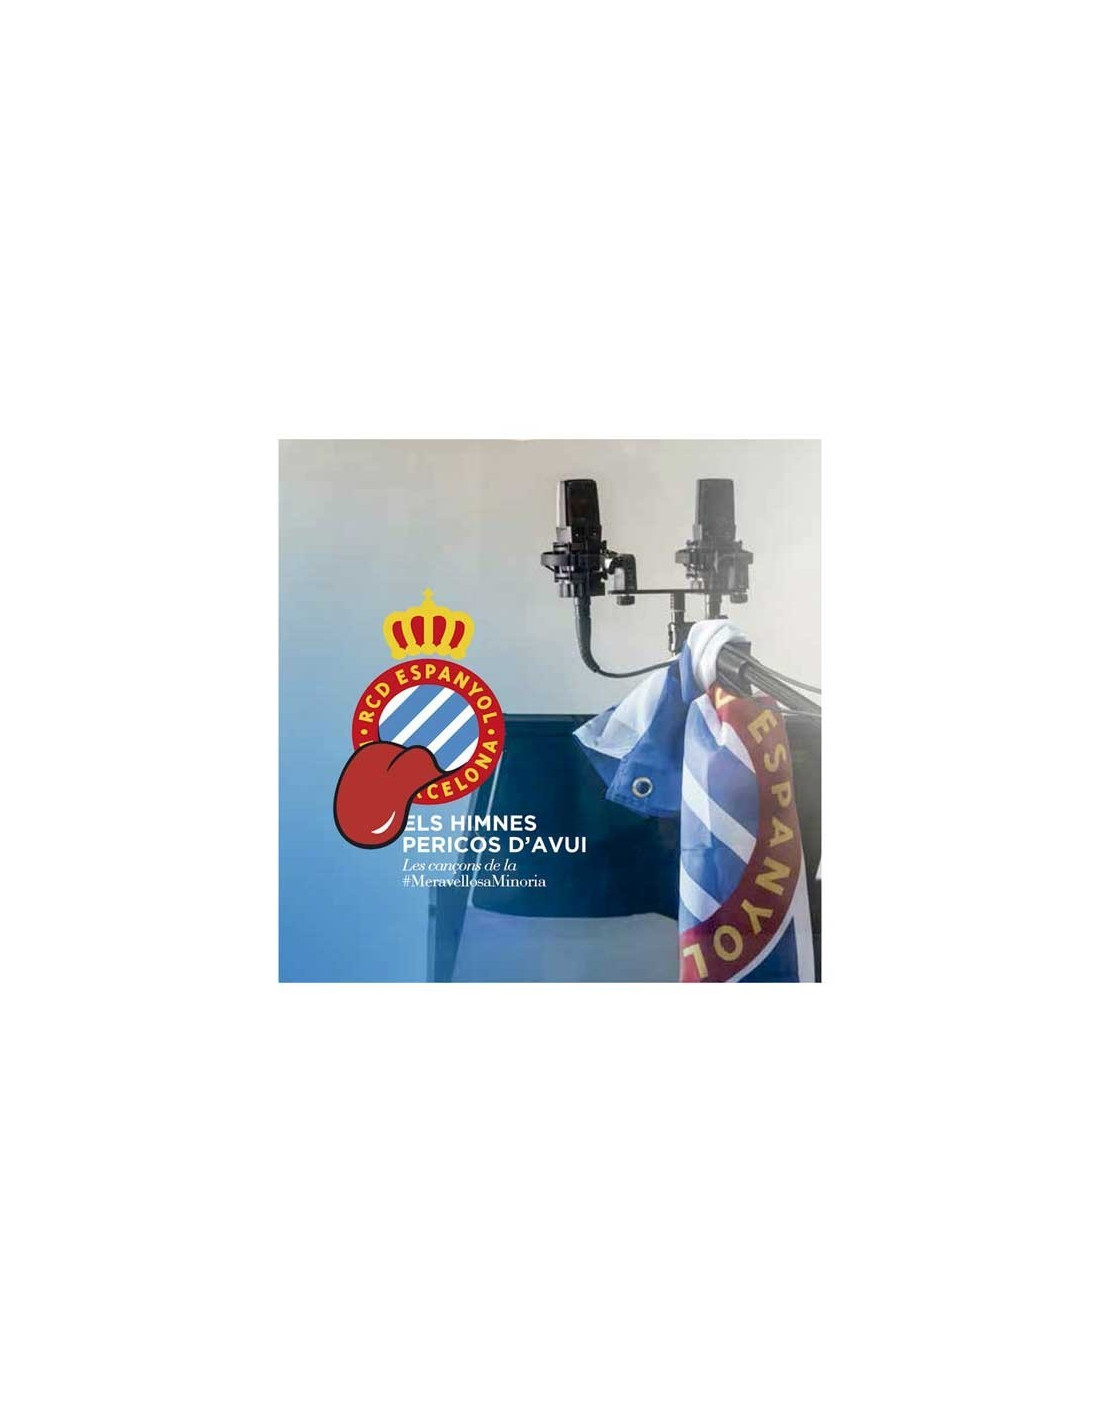 RCDE SONGS CD - RCDE STORE